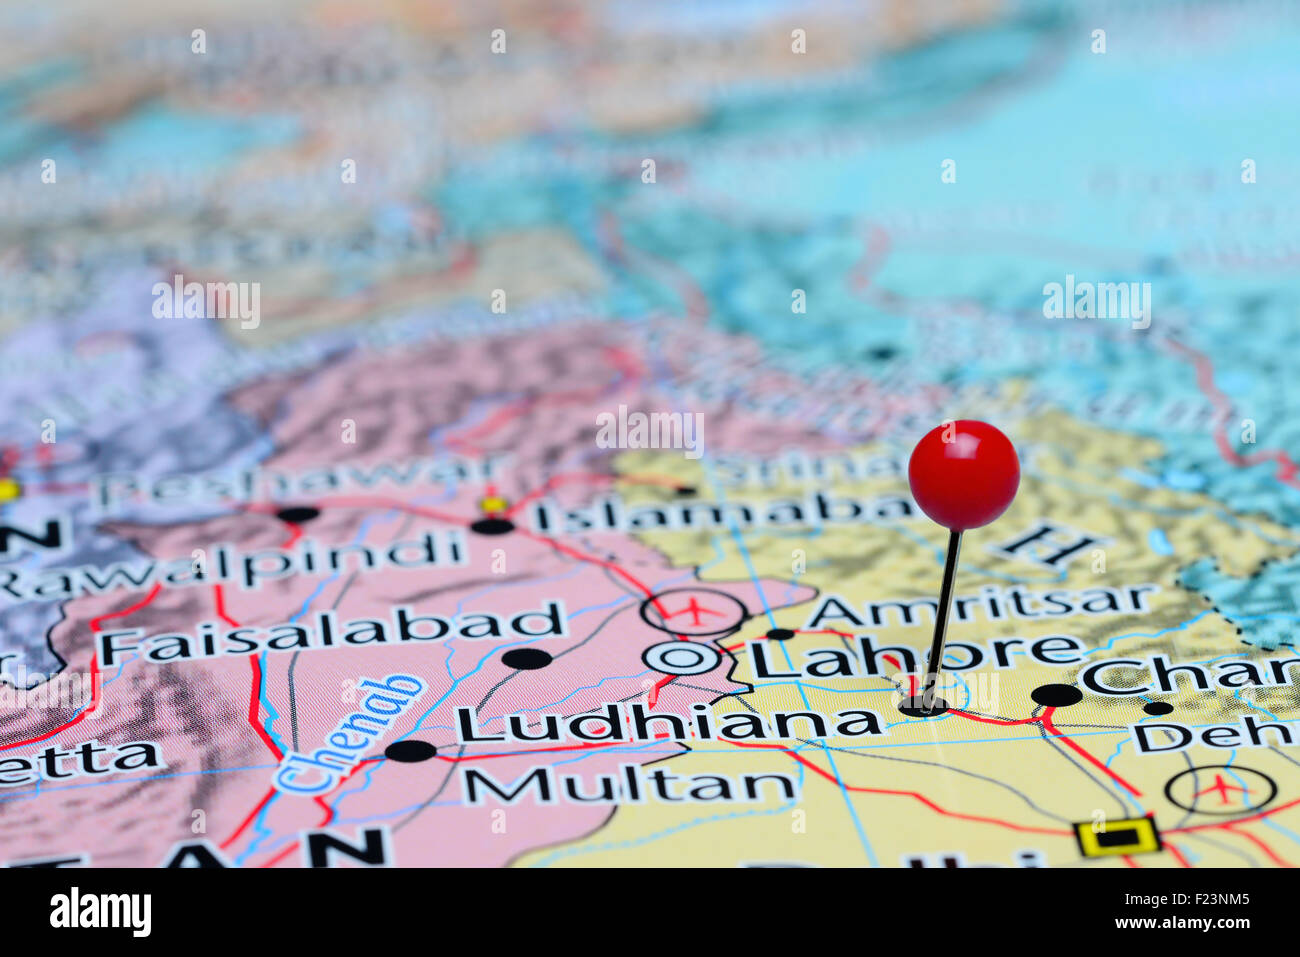 Ludhiana pinned on a map of Asia Stock Photo: 87364037 - Alamy